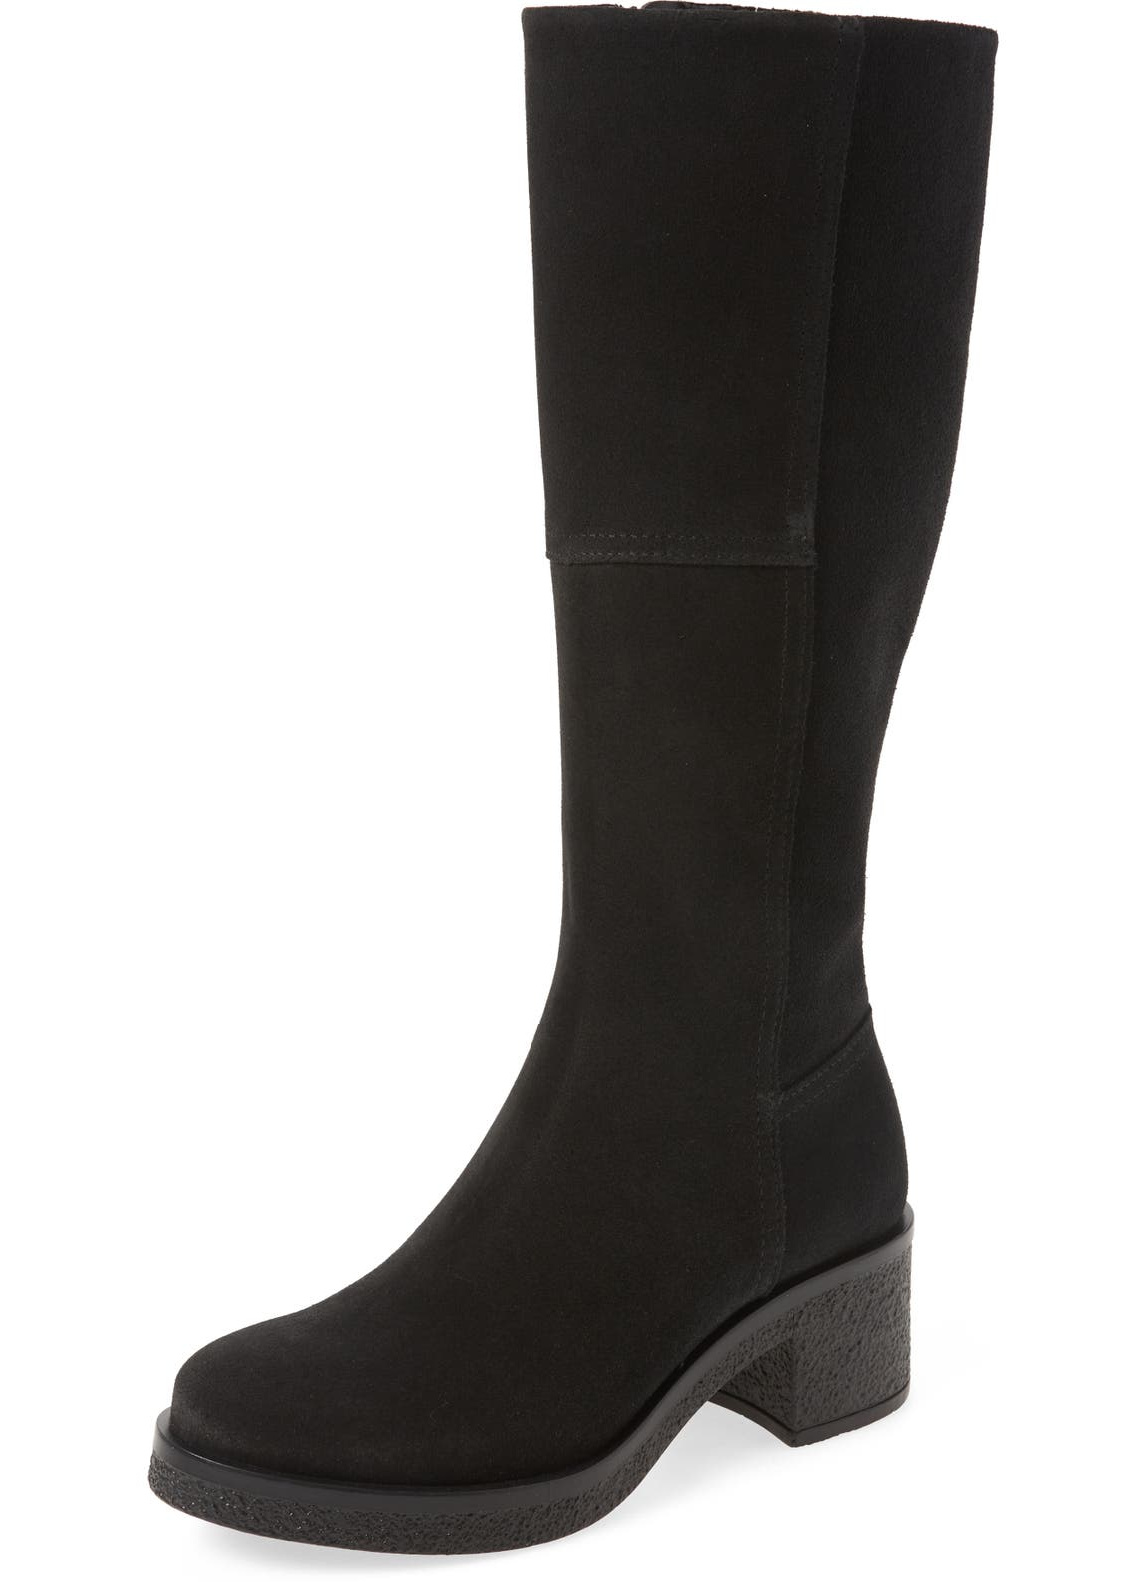 Vionic-knee-high-black-boots-with-heels